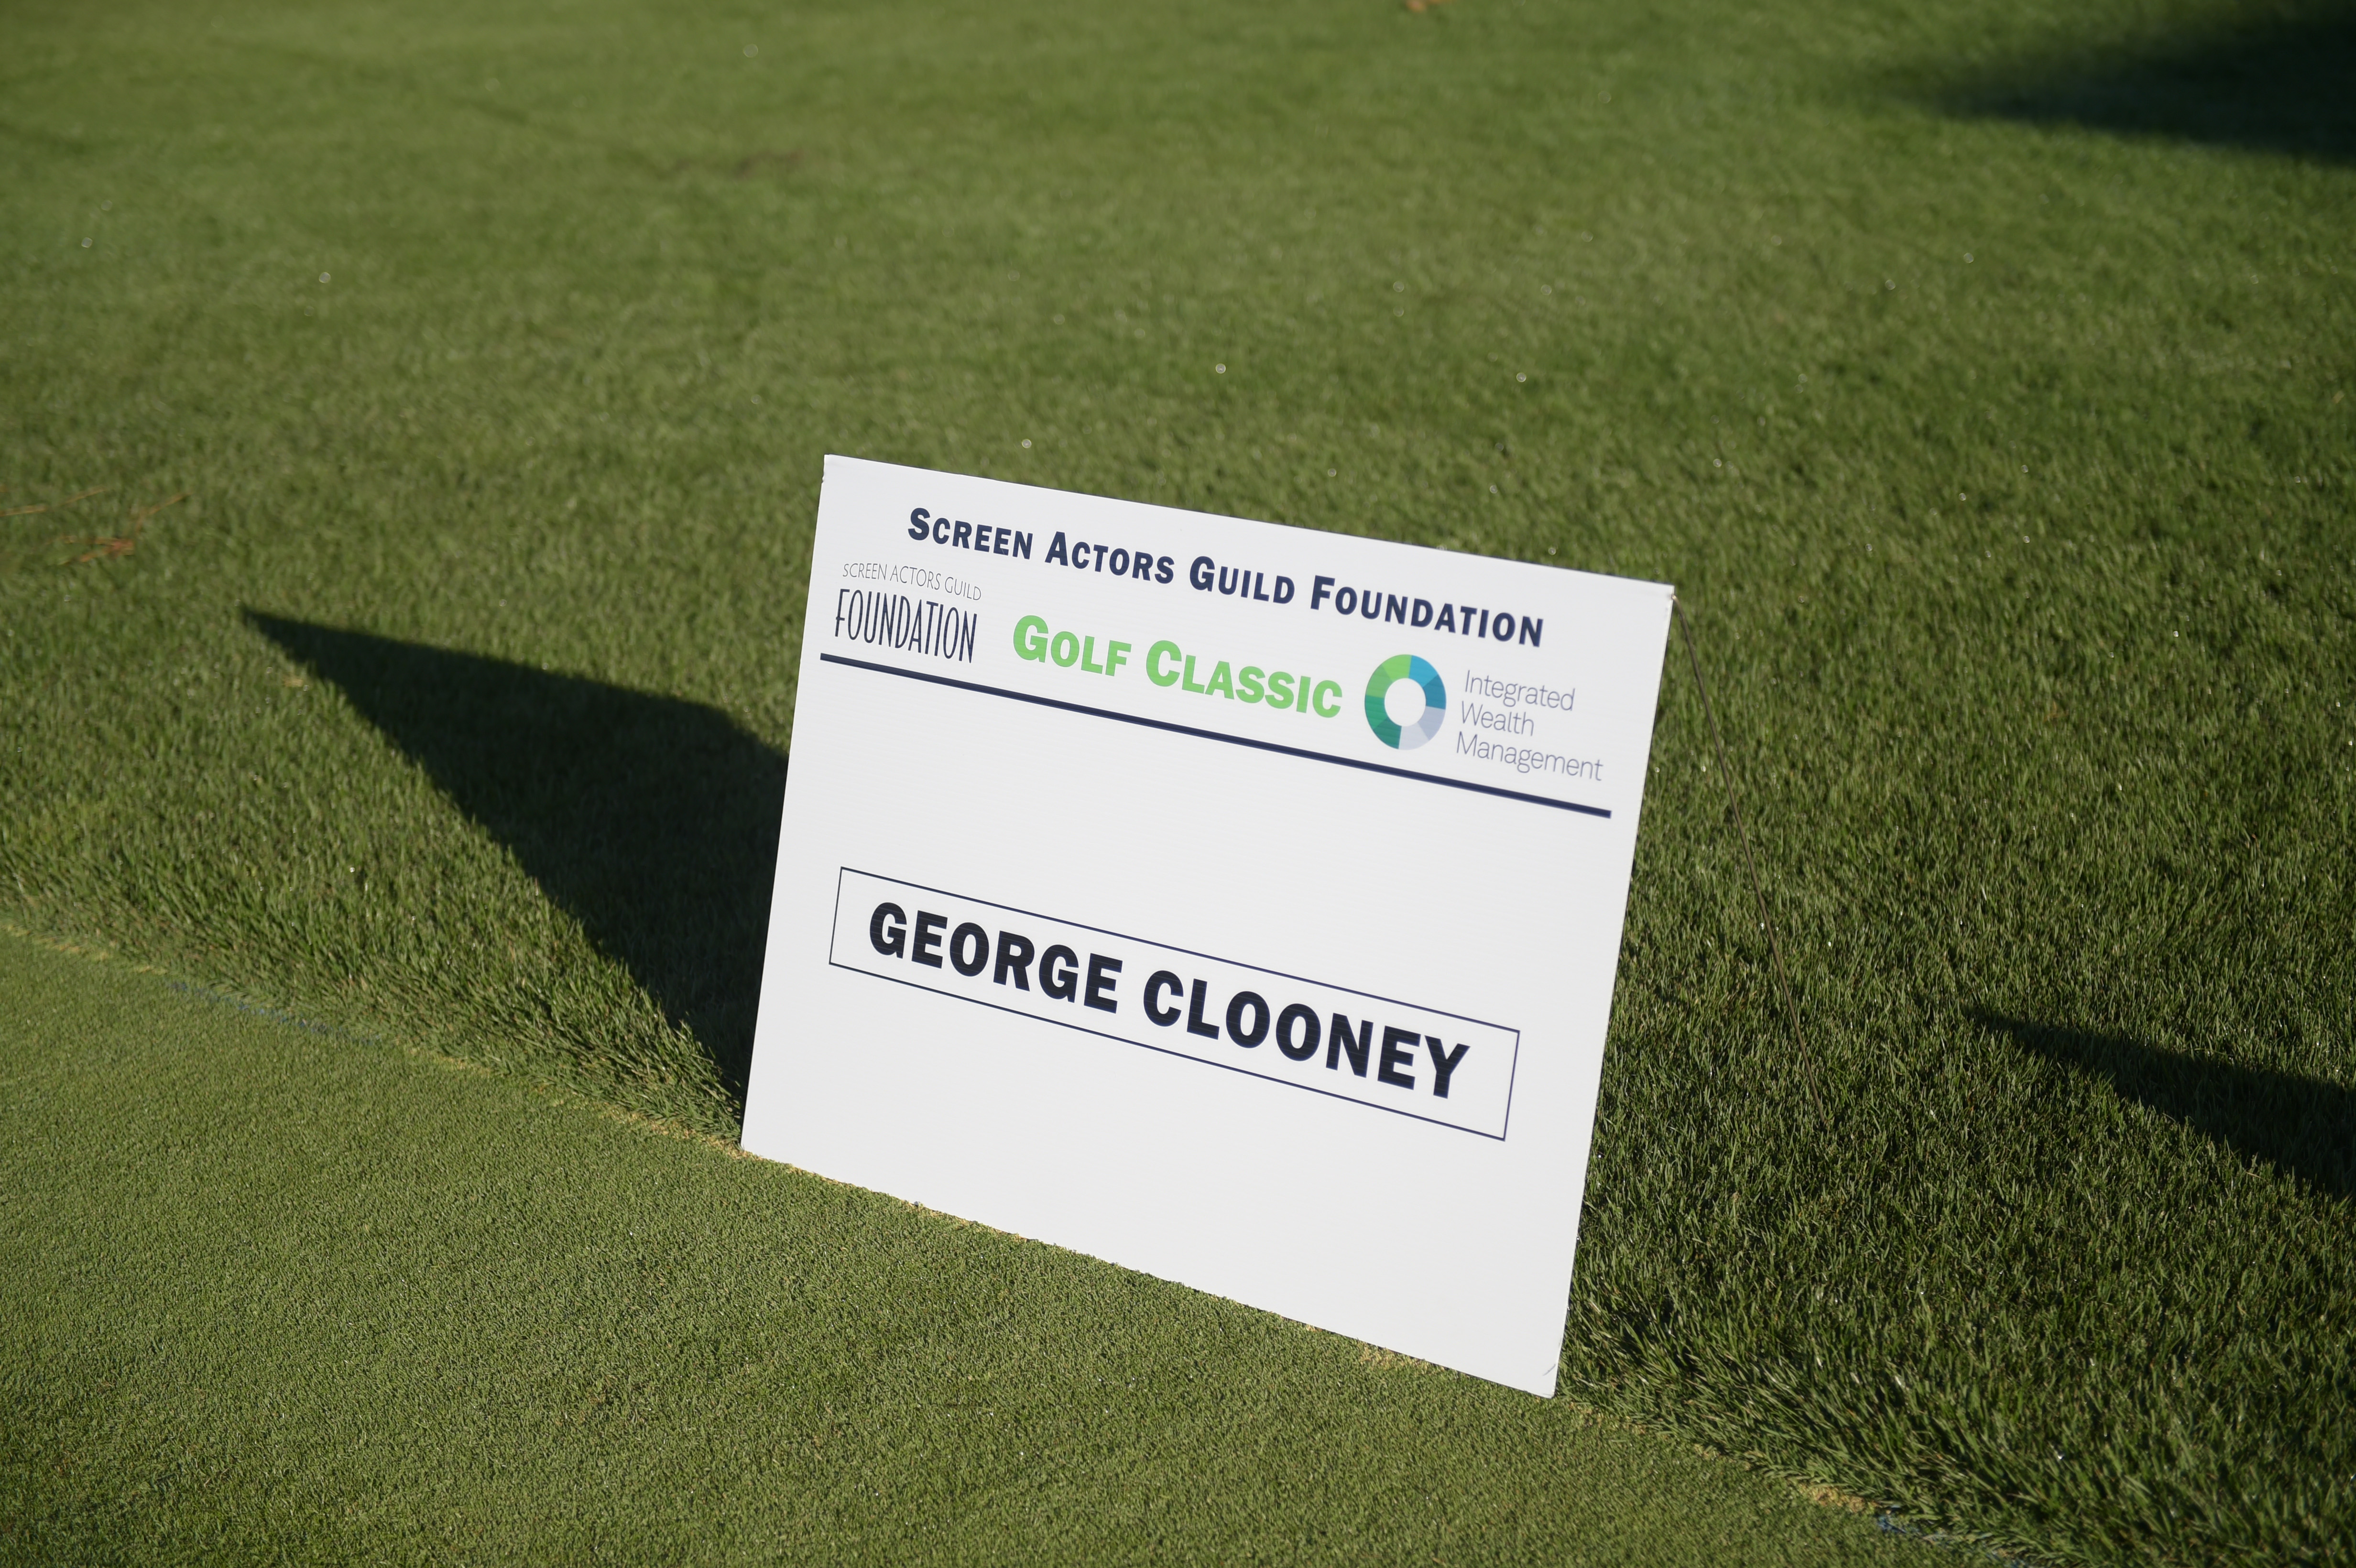 George Clooney sponsors The Screen Actors Guild Foundation's 6th Annual Los Angeles Golf Classic. (Photo by Jason Kempin/Getty Images for The Screen Actors Guild Foundation)